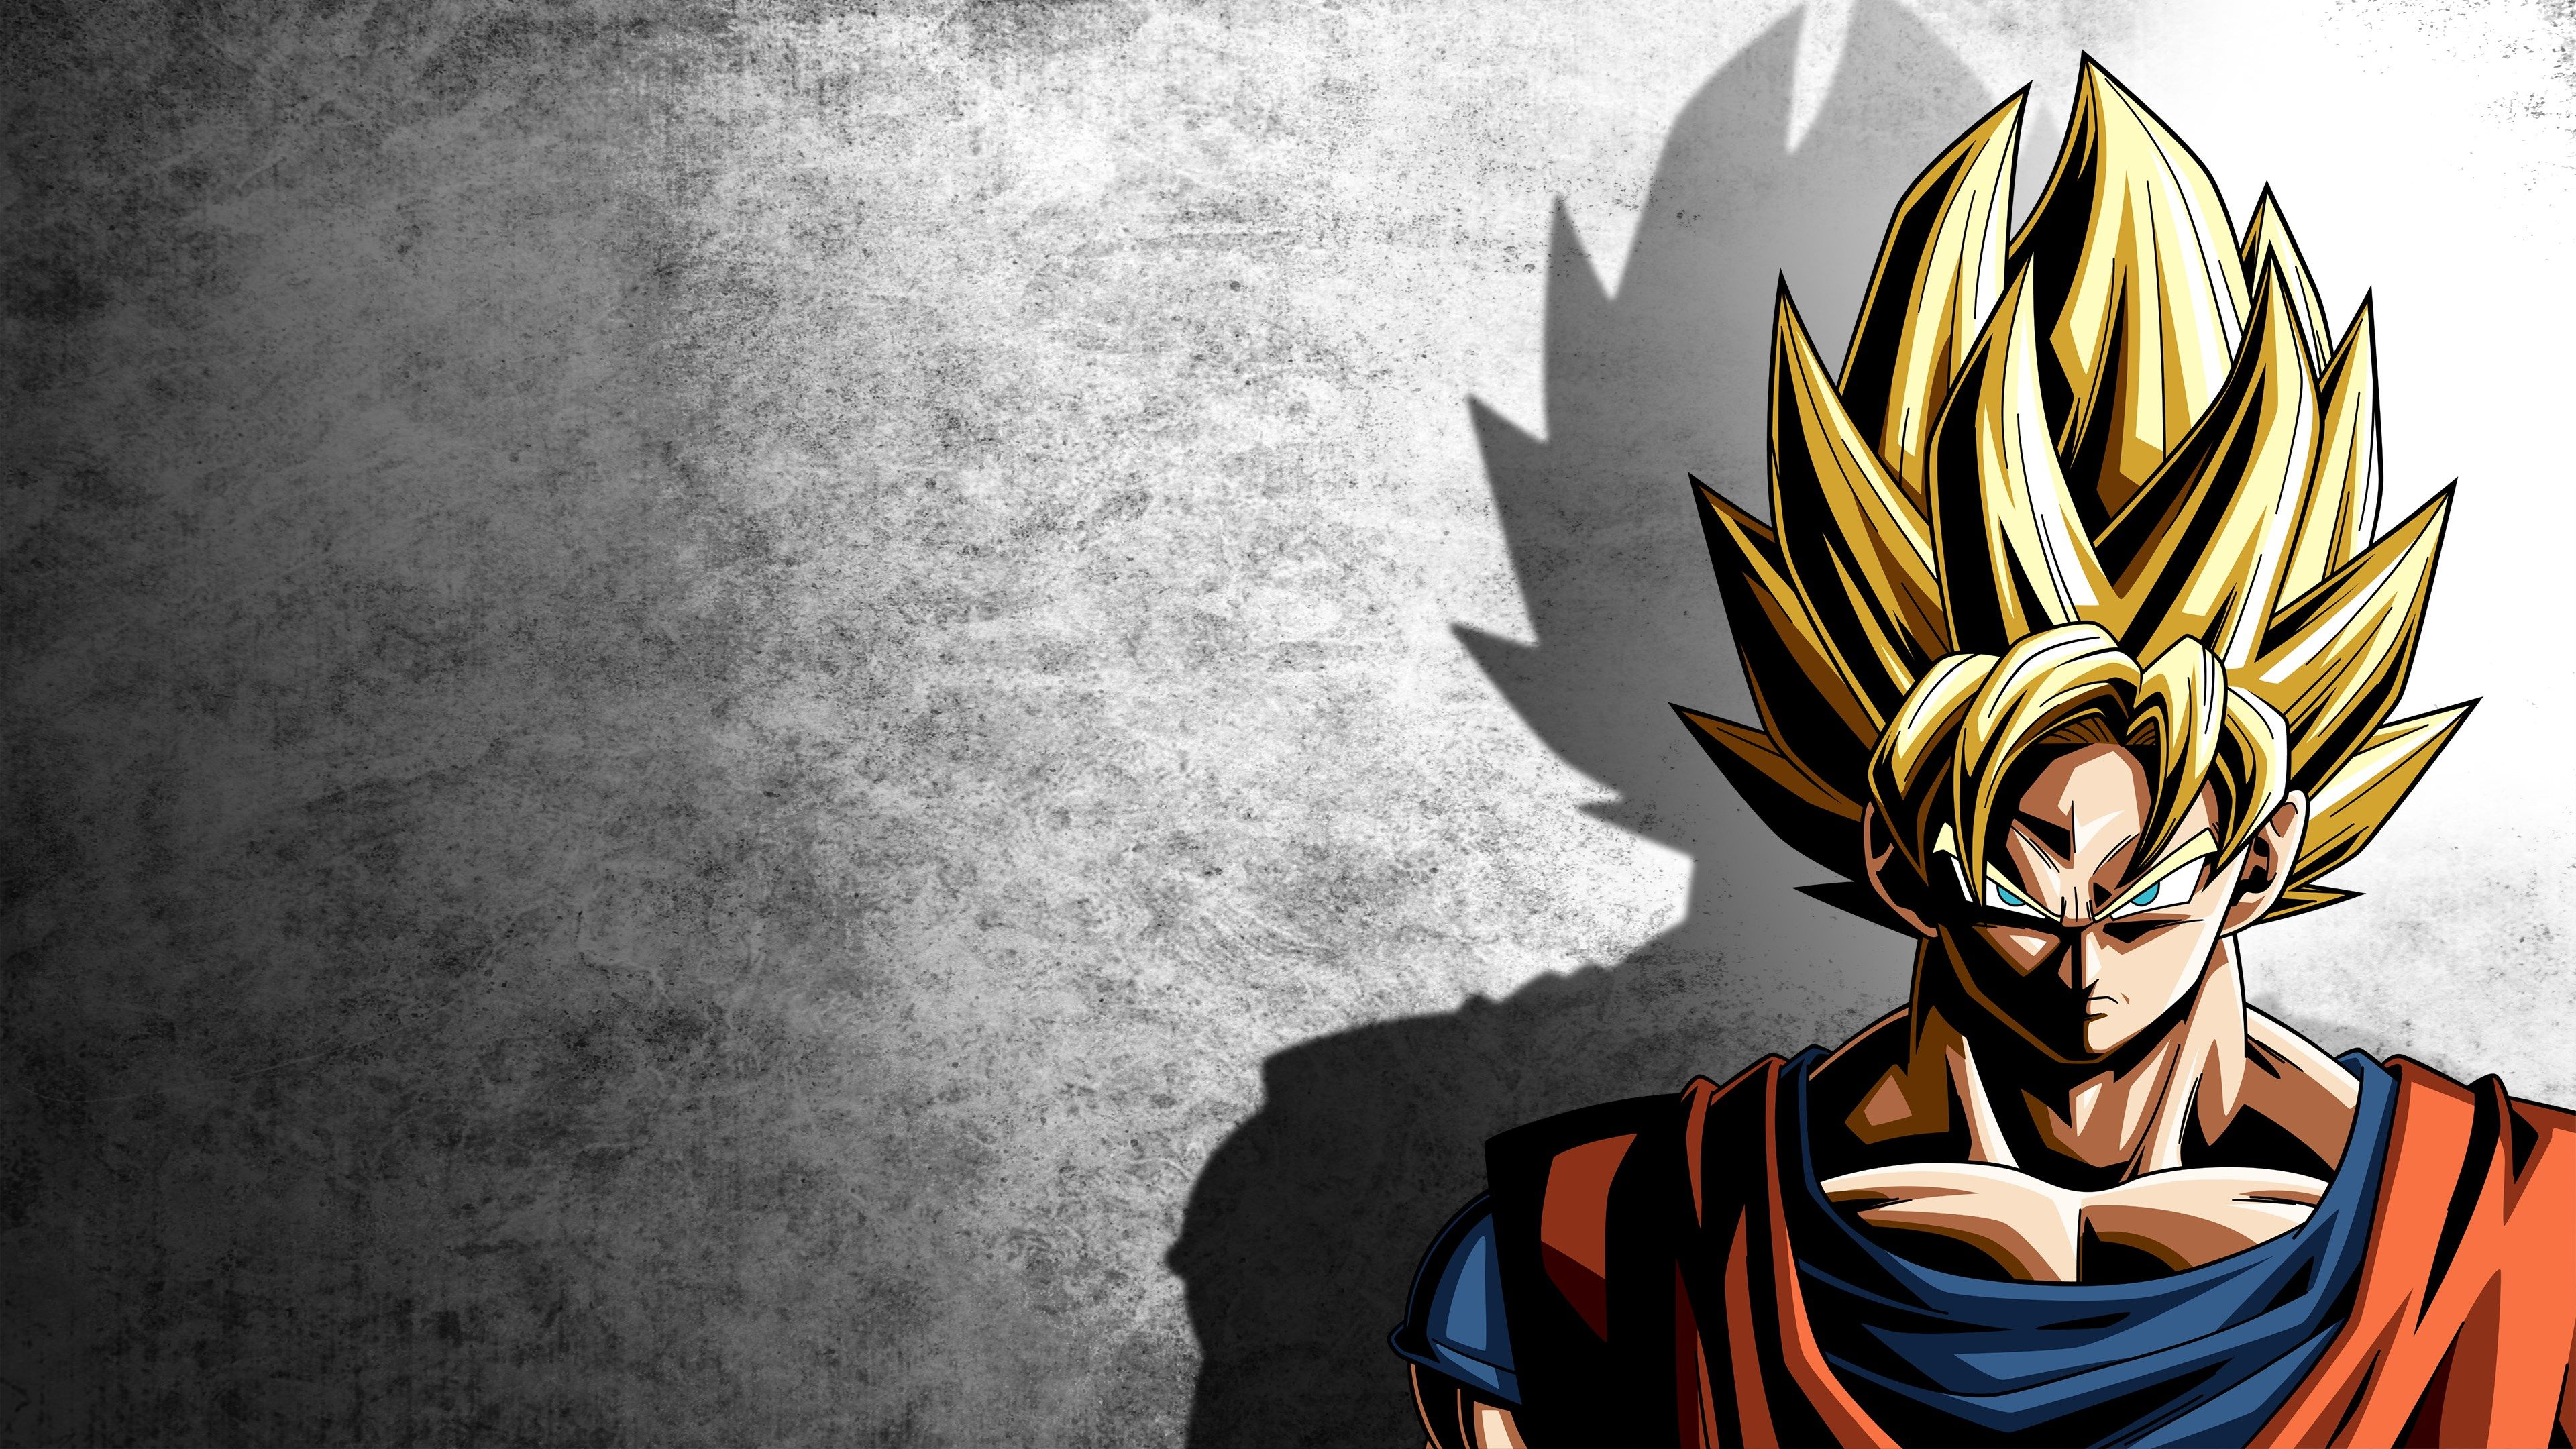 Dbz 4k Wallpapers Top Free Dbz 4k Backgrounds Wallpaperaccess